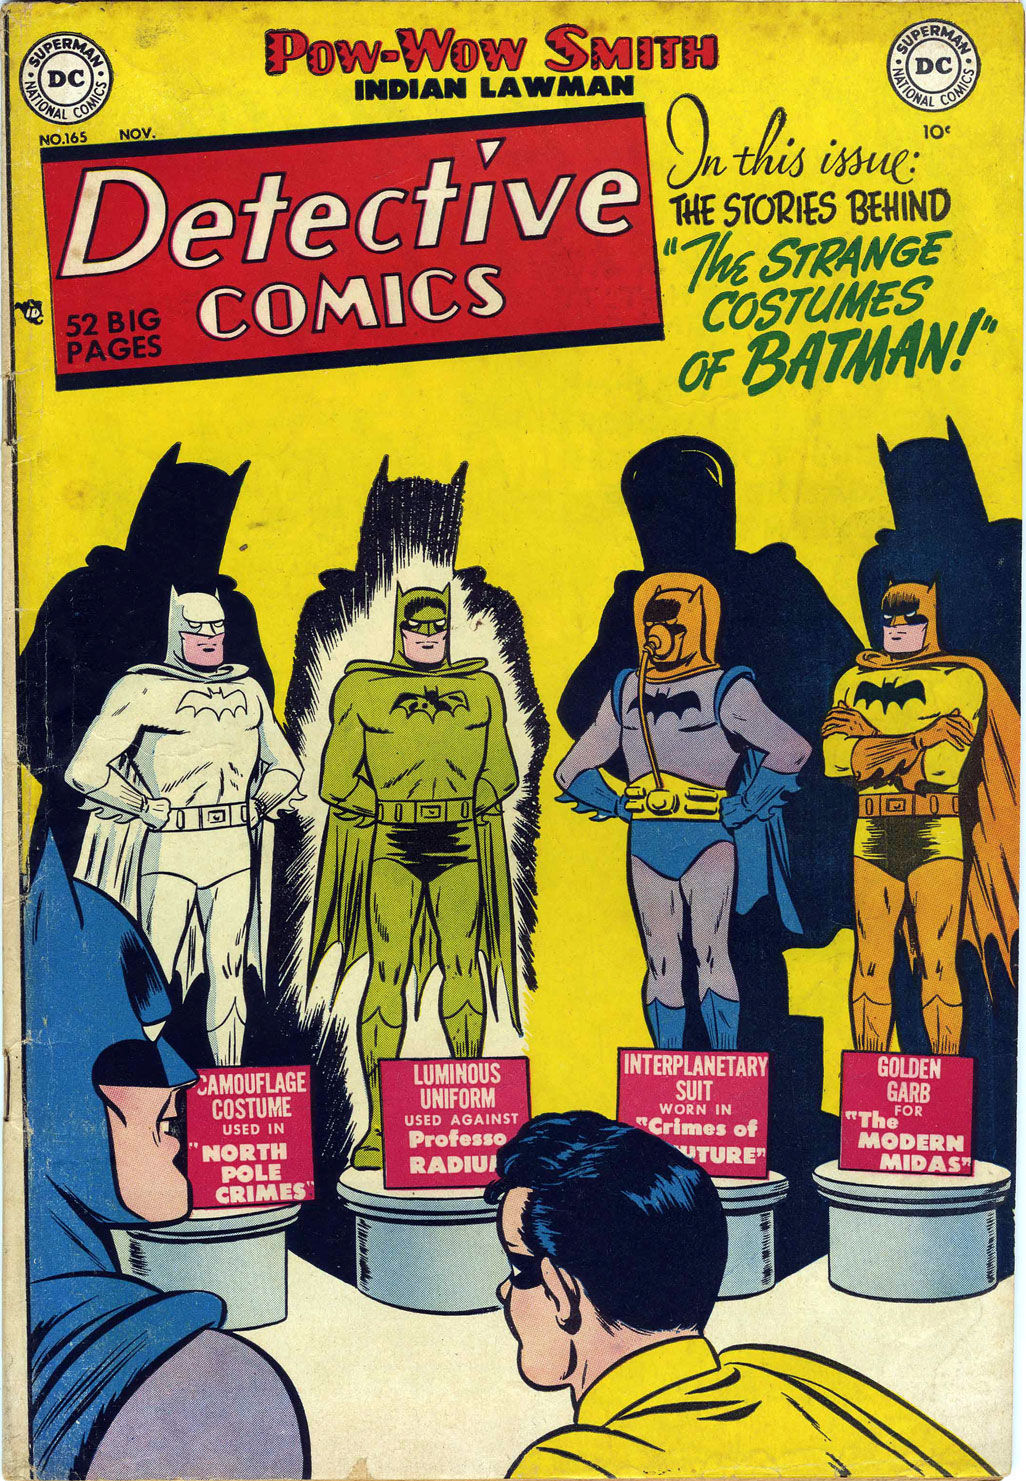 Detective Comics #165 (Writer: Edmond Hamilton, Artists: Dick Sprang, Charles Paris)